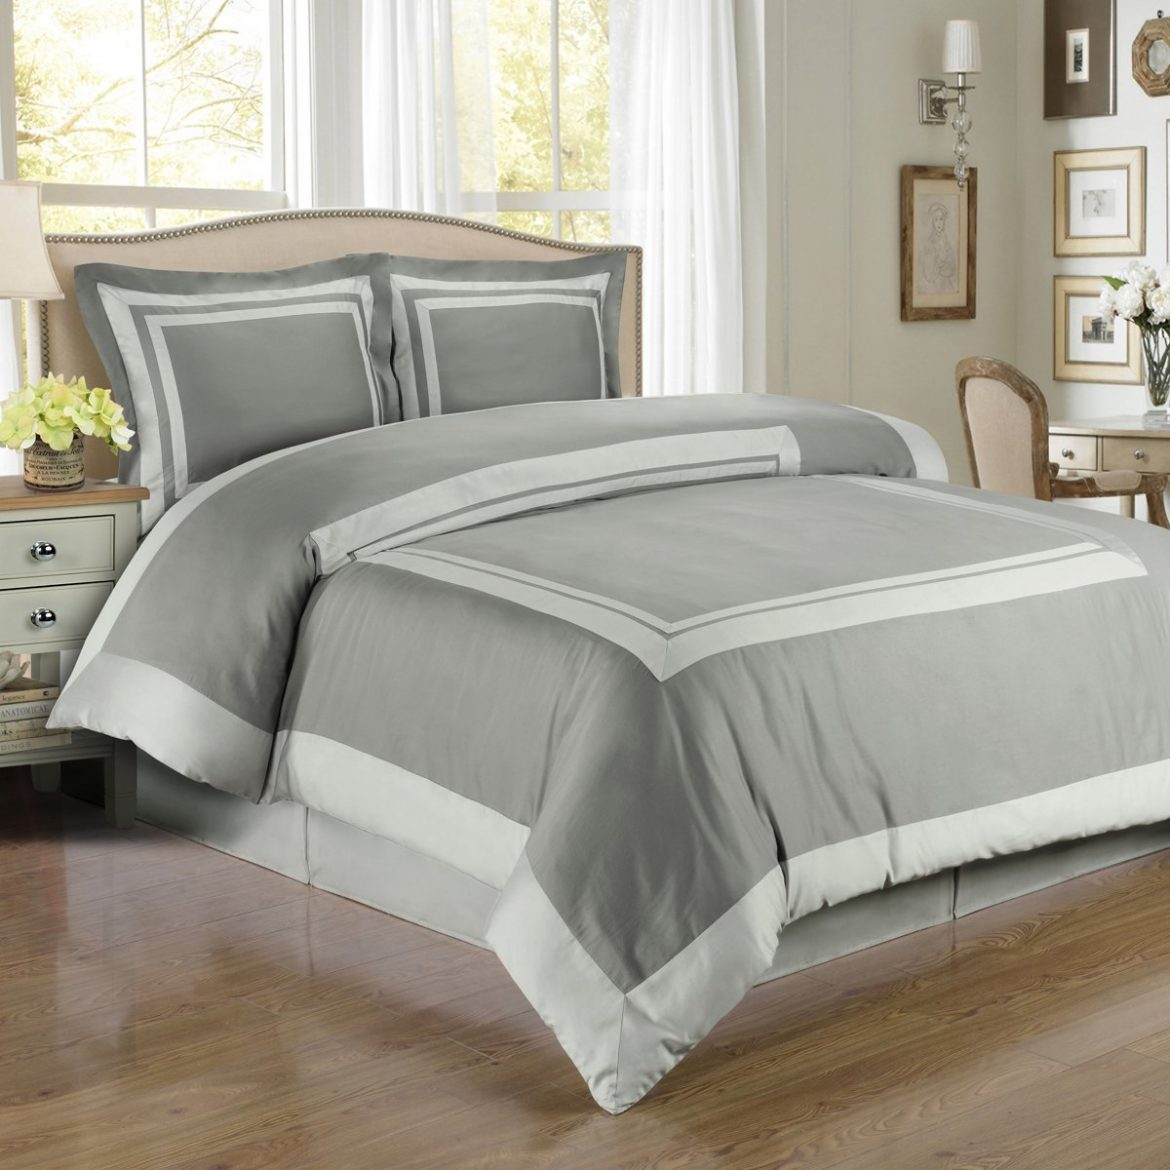 Egyptian Cotton Sheets | Royal Blue Sheets | Bloomingdales Sheets